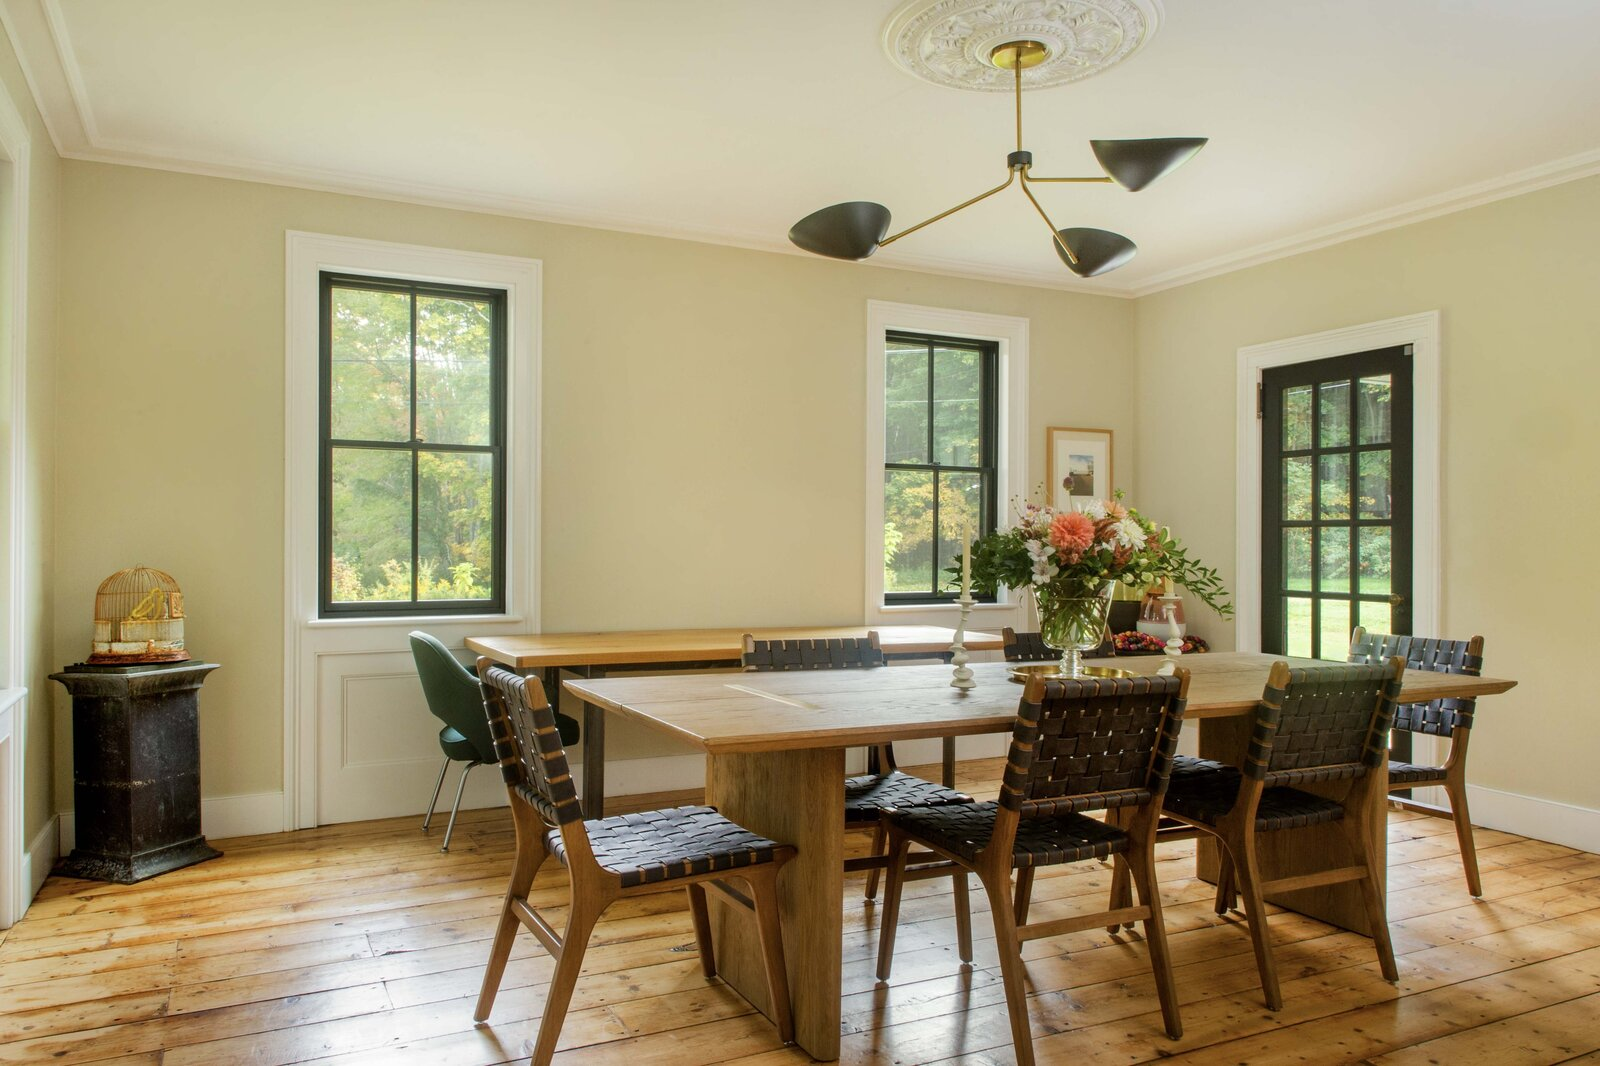 The spacious formal dining area boasts nine-foot ceilings, as well as original hardwood floors and moldings. A French door leads out to the covered porch.  Photo 2 of 14 in For $795K, This 1865 Greek Revival Farmhouse Could Be Your Escape From New York